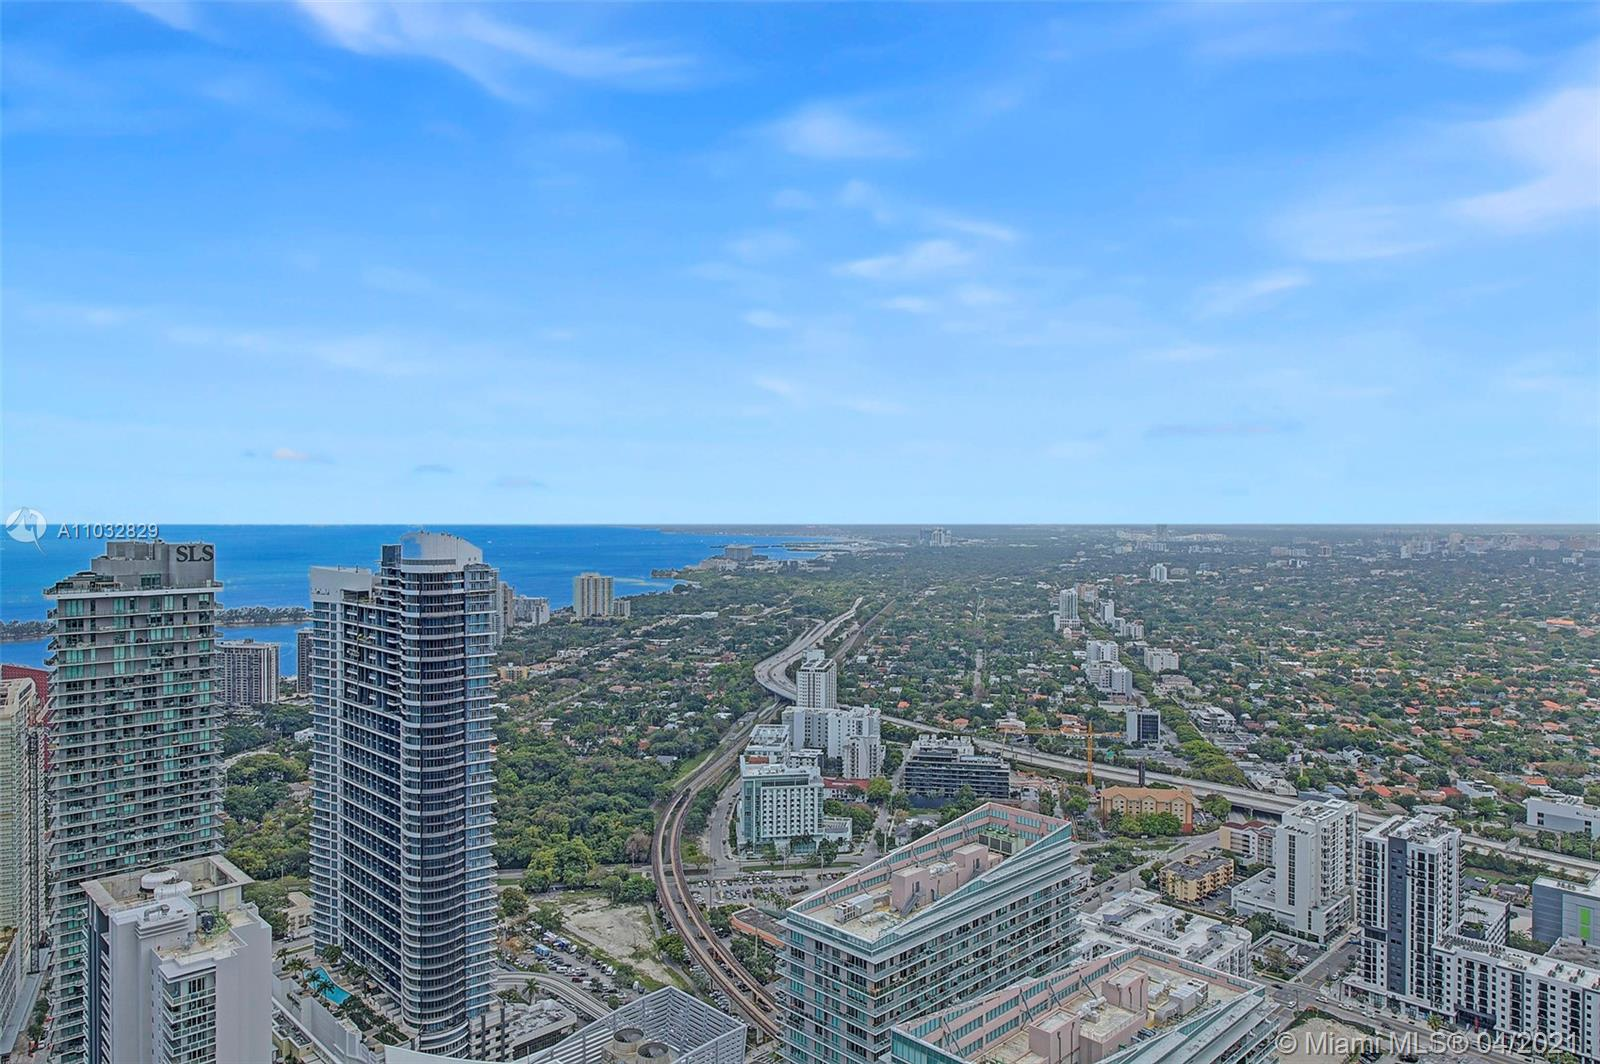 PRICE REDUCTION FOR A QUICK SALE. Experience life at the top at this exclusive upper penthouse at Brickell Flatiron featuring soaring high ceilings with floor to ceiling windows.Your home in the sky was designed with exceptionally high finishes, control 4 smart home technology, custom made closets and wine cellar, top of the line appliances and electric shades. Brickell Flatiron's exclusive lifestyle brings resort inspired living home, With five-star service and elite amenities, residents will experience the benefits of unsurpassed convenience and luxury